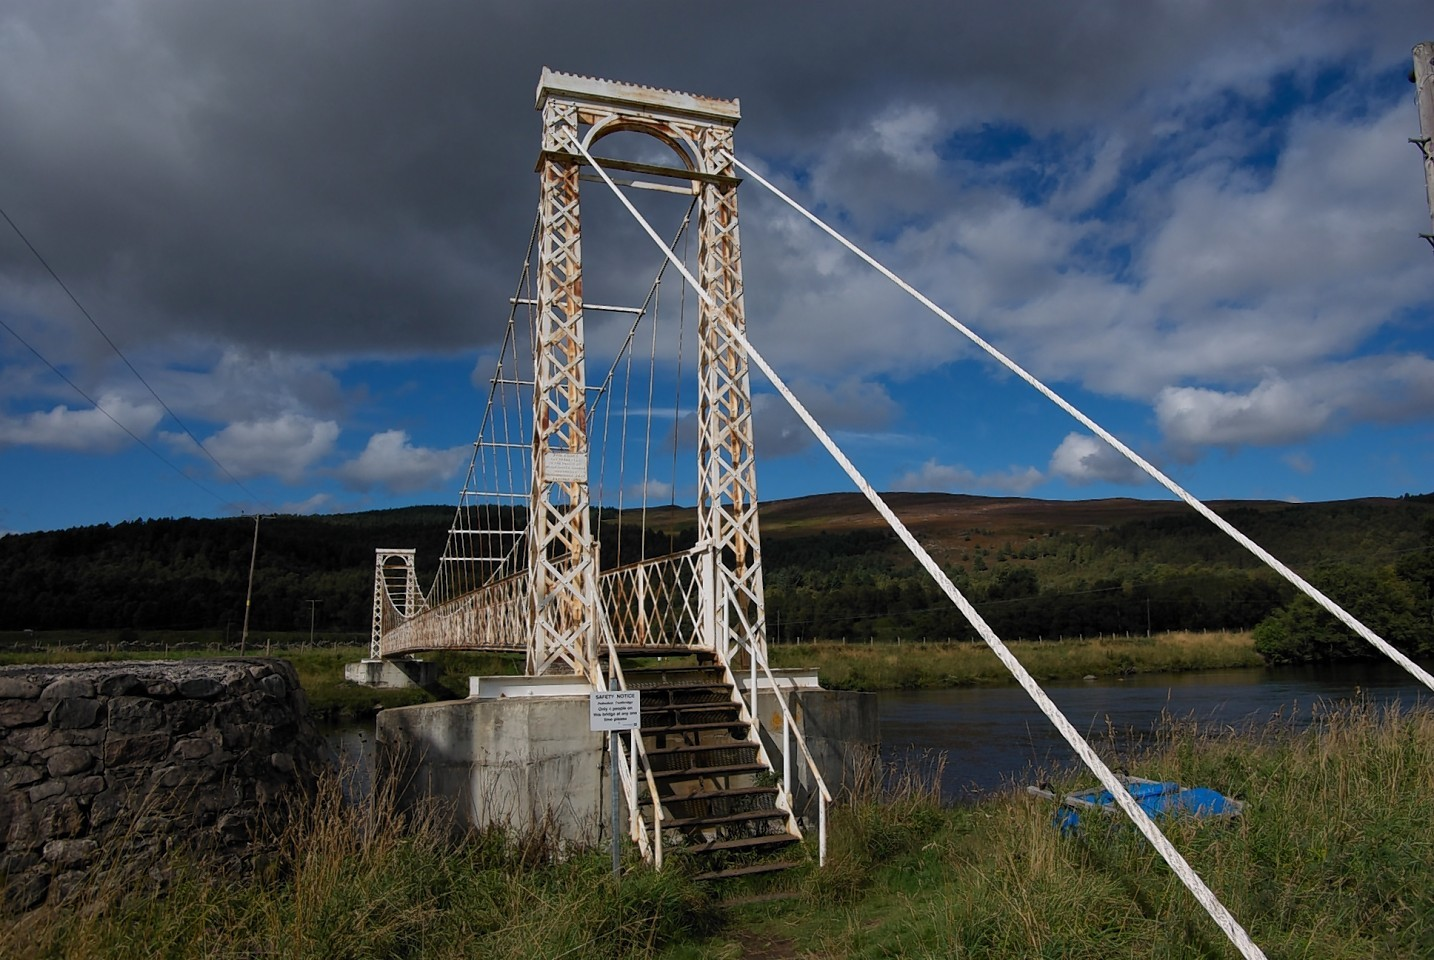 Polhollick Suspension Bridge, Ballater